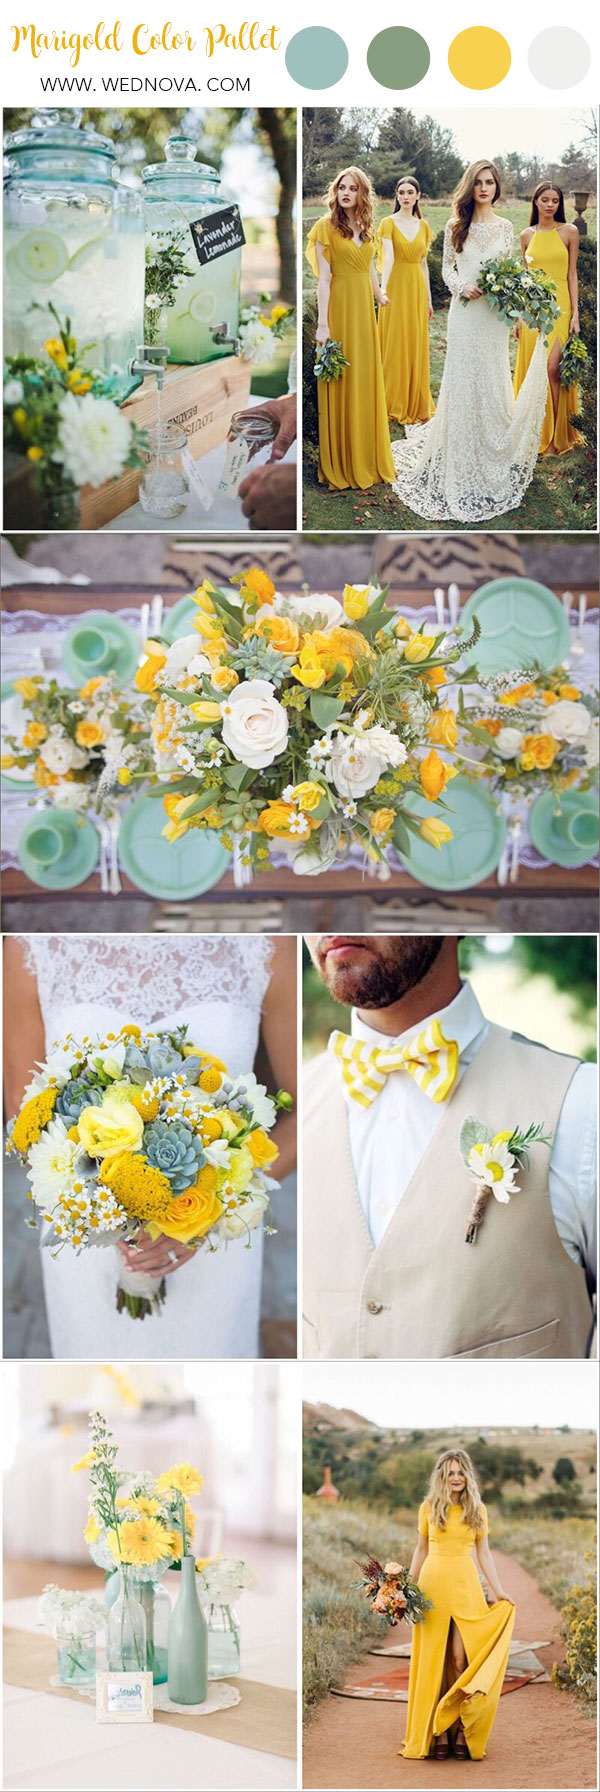 Summer Wedding Color 10 Yellow Wedding Ideas To Have Wednova Blog